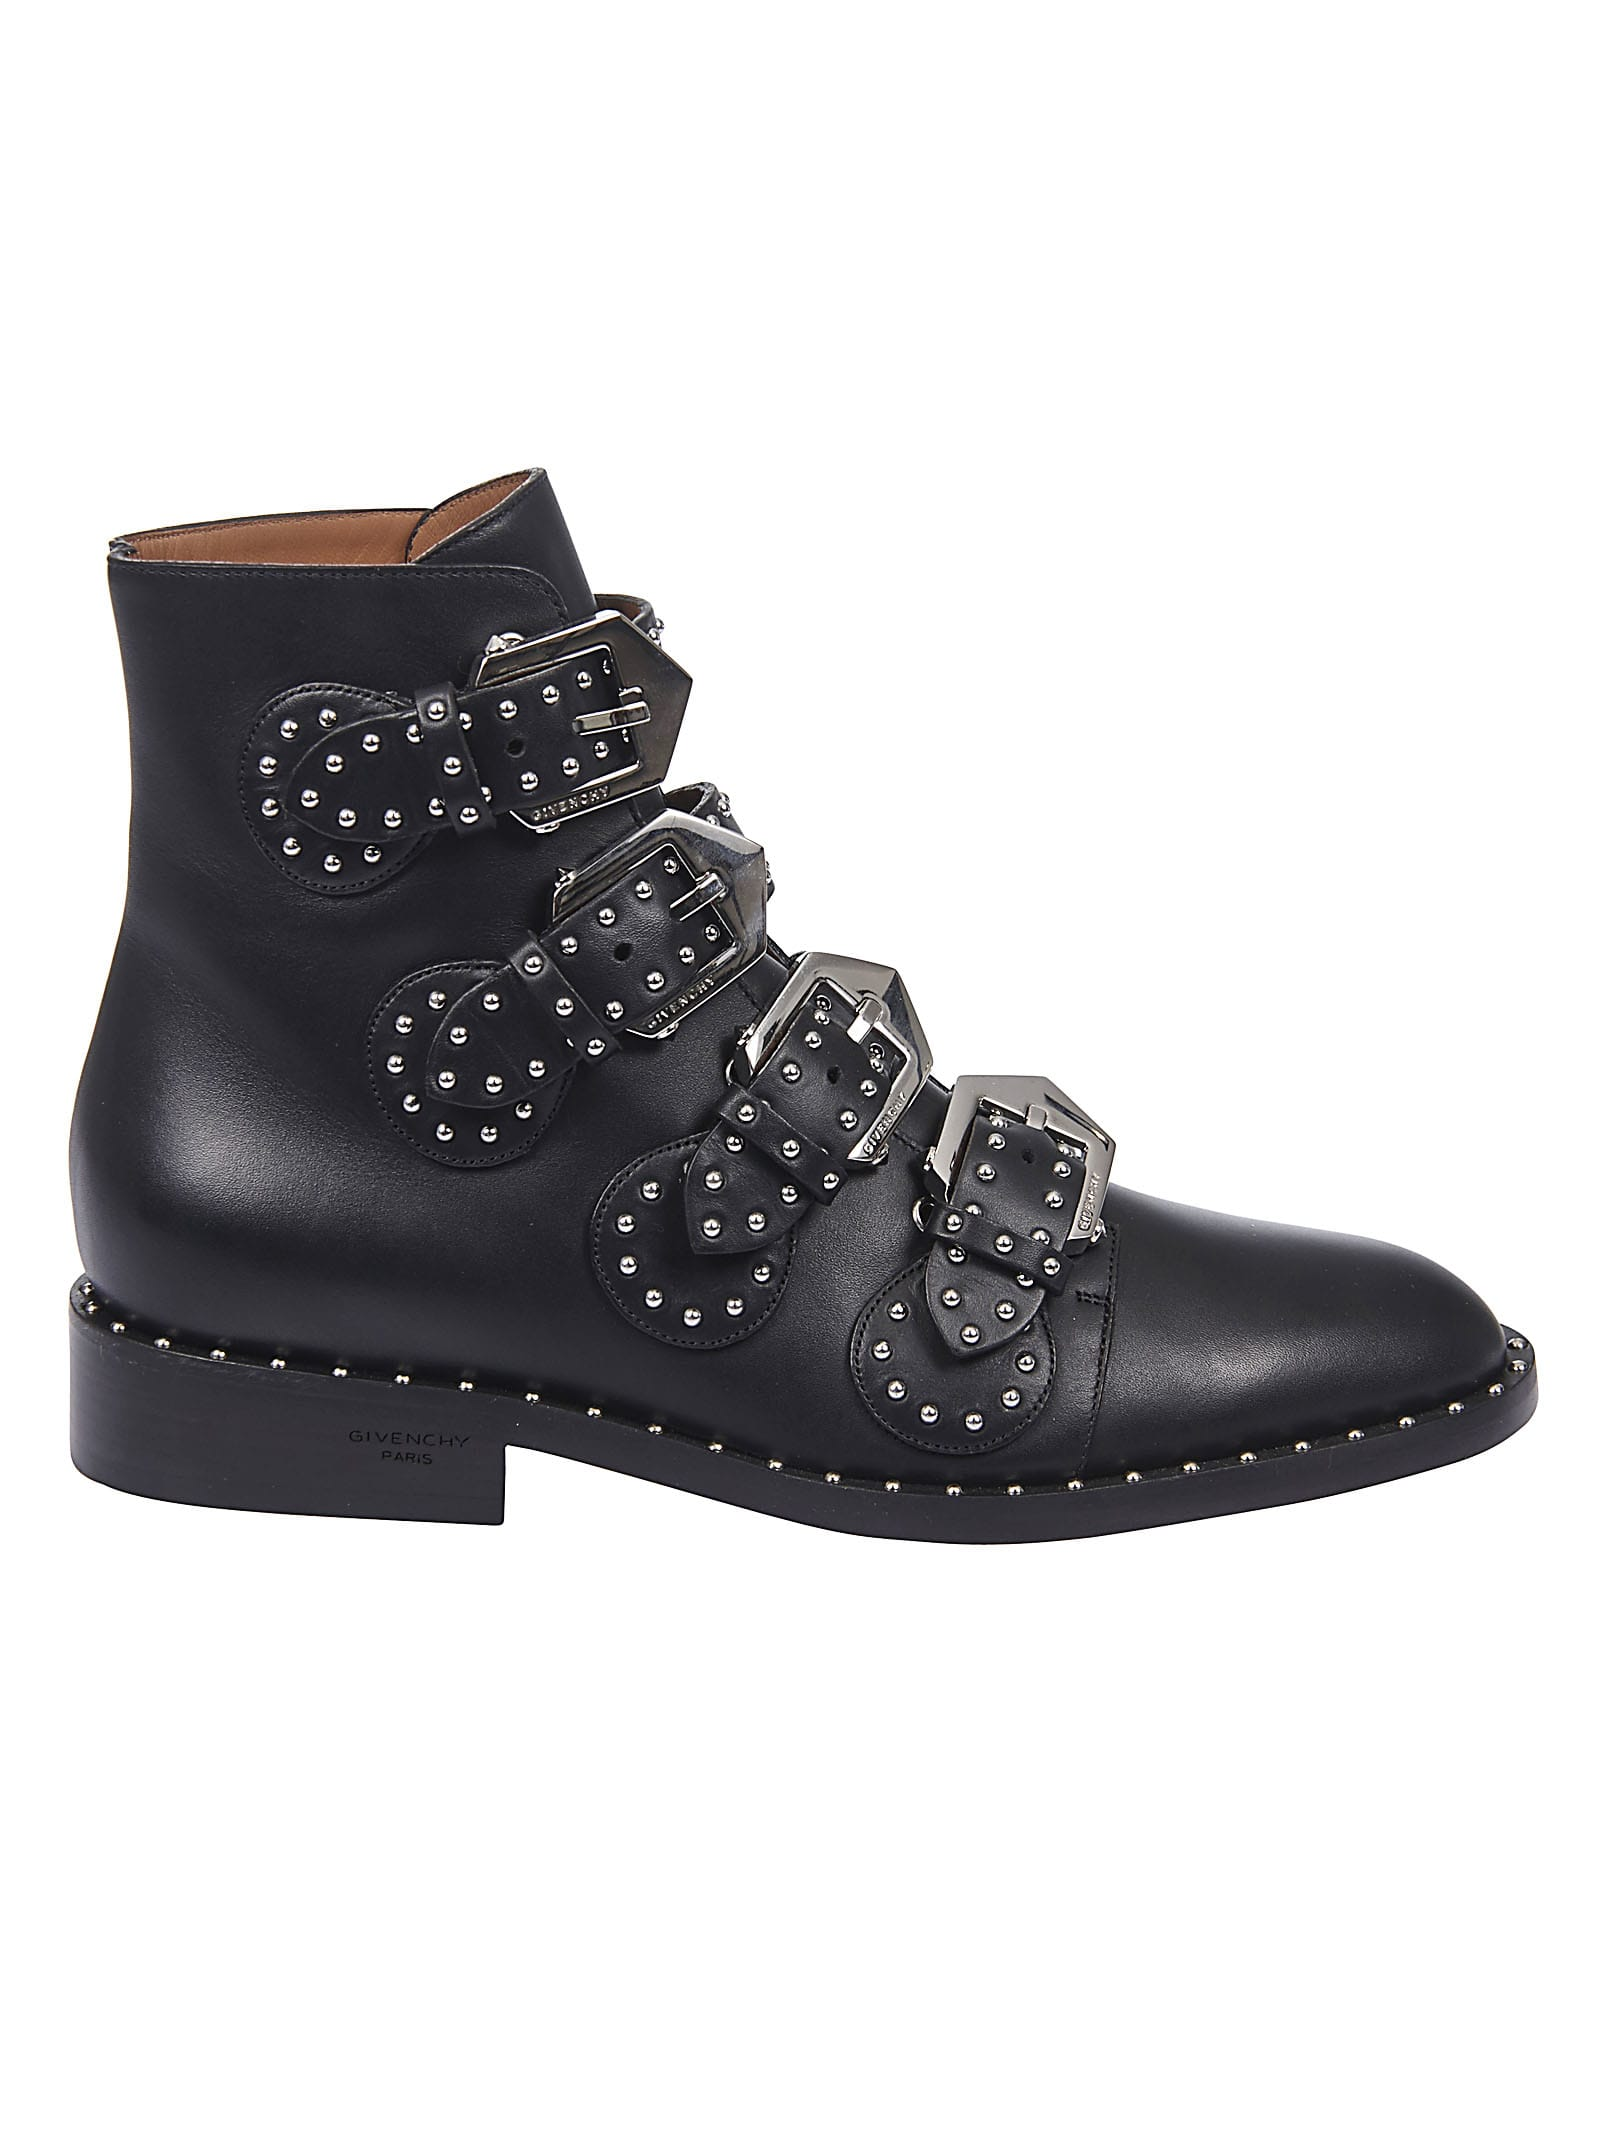 Givenchy Boots BUCKLED ANKLE BOOTS